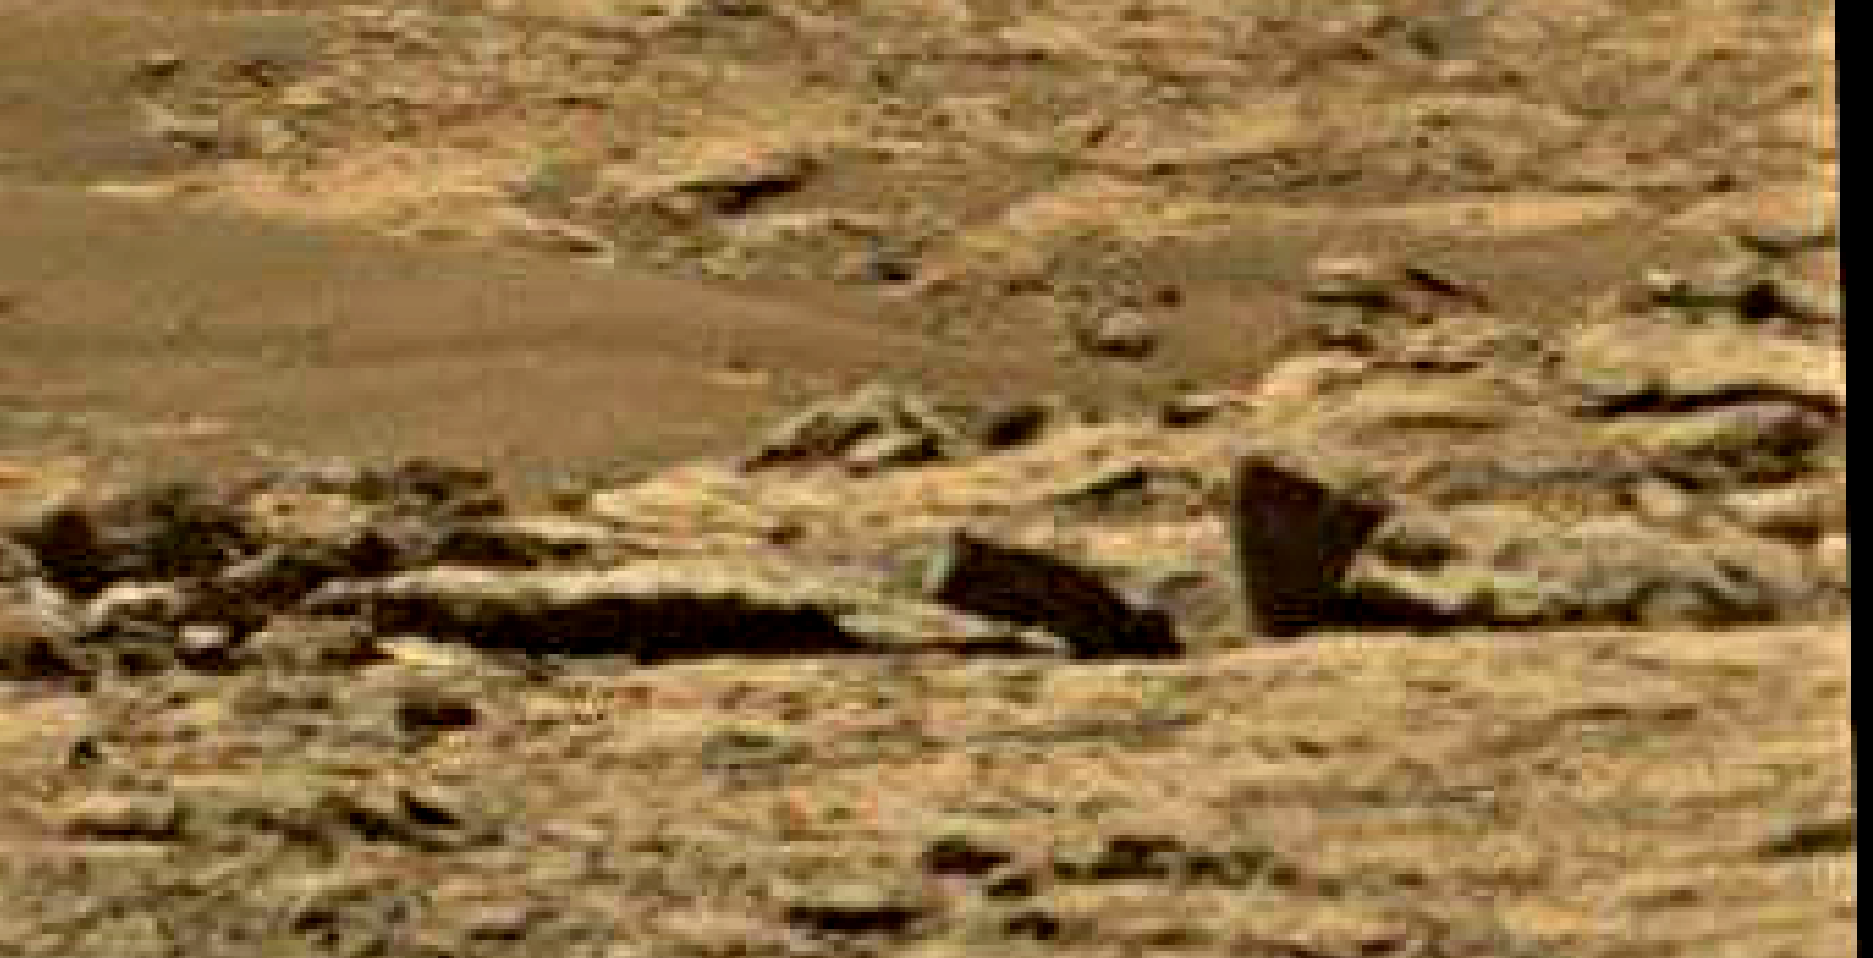 mars sol 1434 anomaly artifacts 2 was life on mars